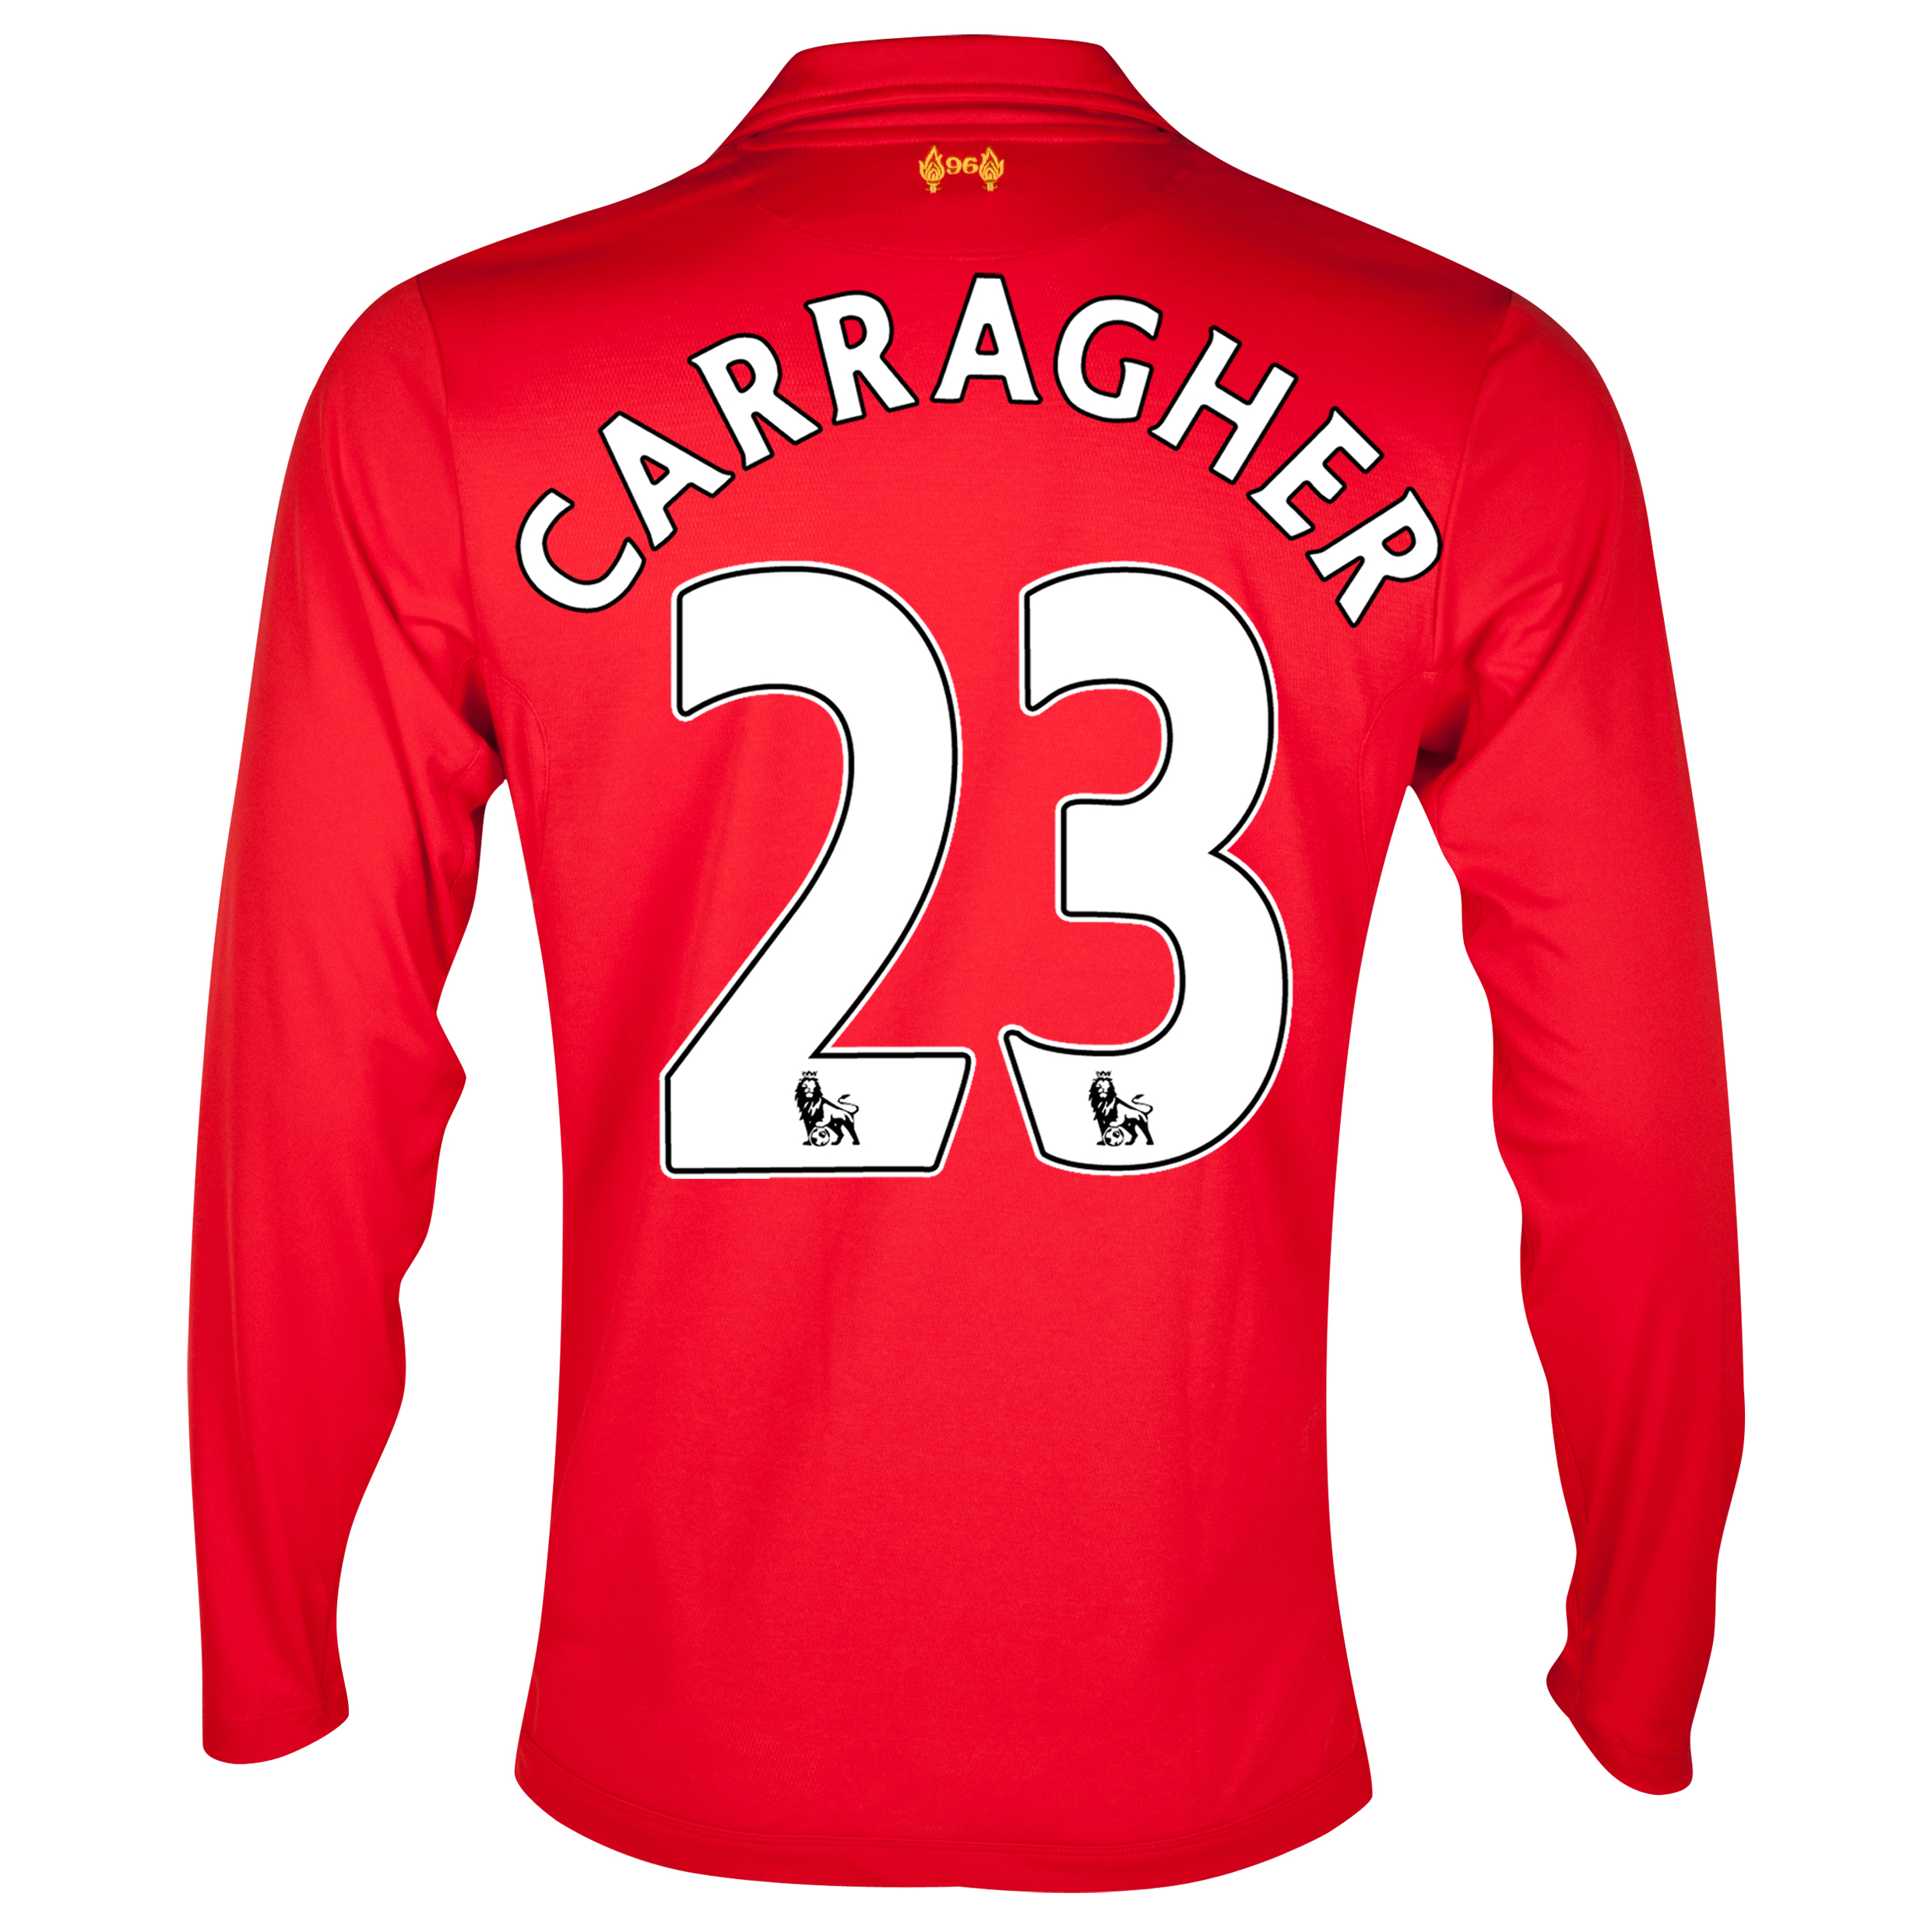 Liverpool Home Shirt 2012/13 - Long Sleeve - Kids with Carragher 23 printing